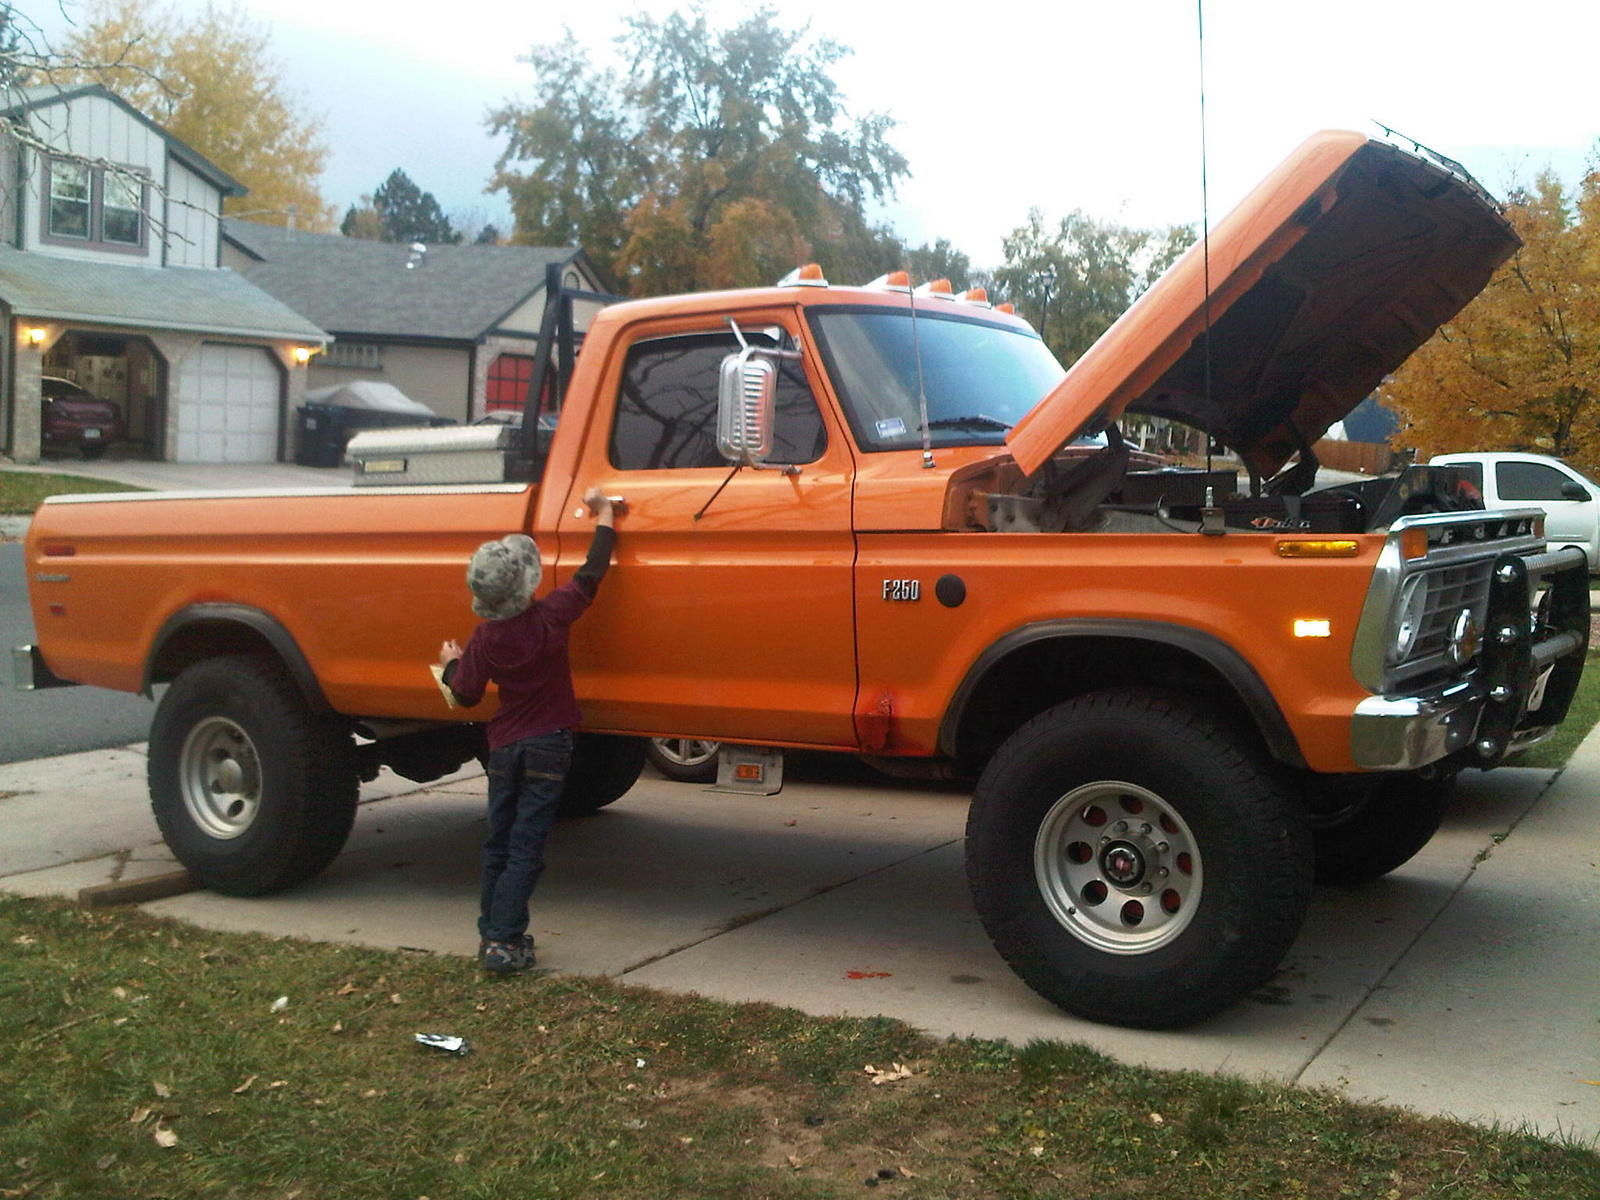 1005tr 1993 Chevy C1500 together with 1976 Ford F 250 Overview C4497 besides 2015 Ford Highboy furthermore 1978 Ford F 150 Pictures C4462 together with Watch. on 1989 ford f 250